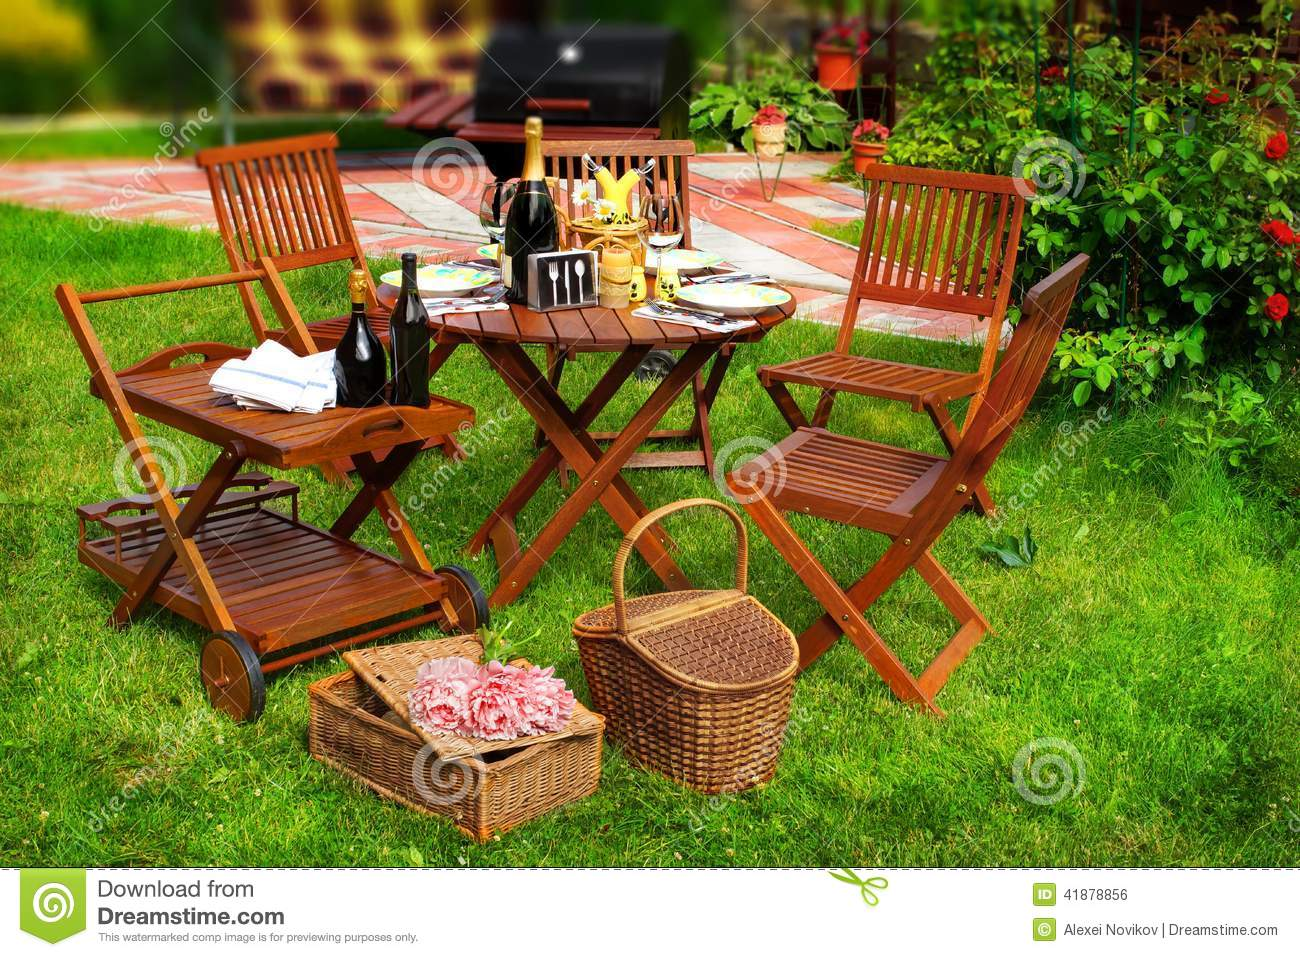 Backyard Summer Background : Summer Party or Picnic Scene Outdoor furniture on the lawn BBQ Grill